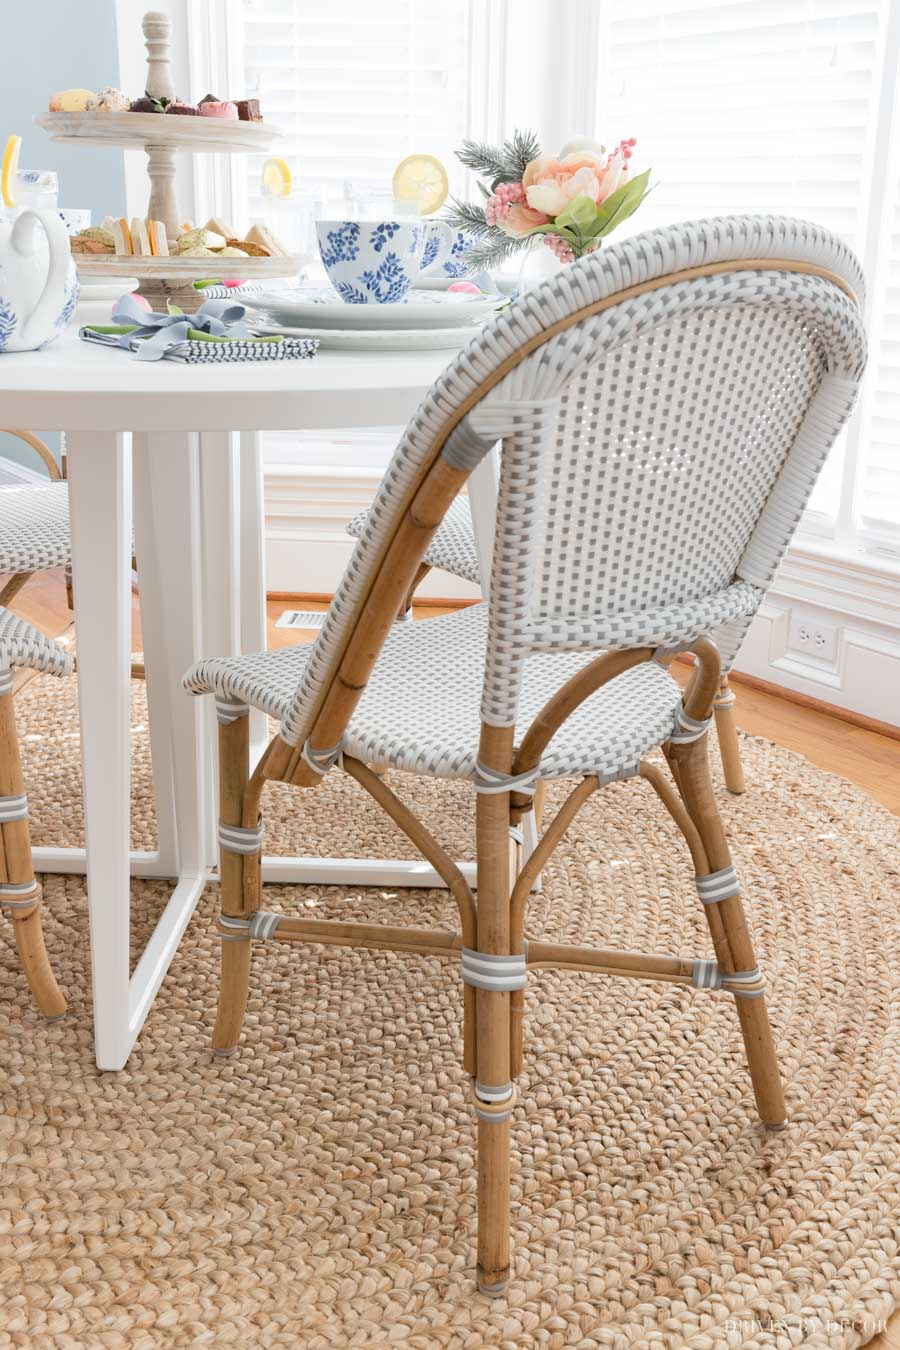 Our breakfast nook chairs - cute bistro chairs in gray and white!